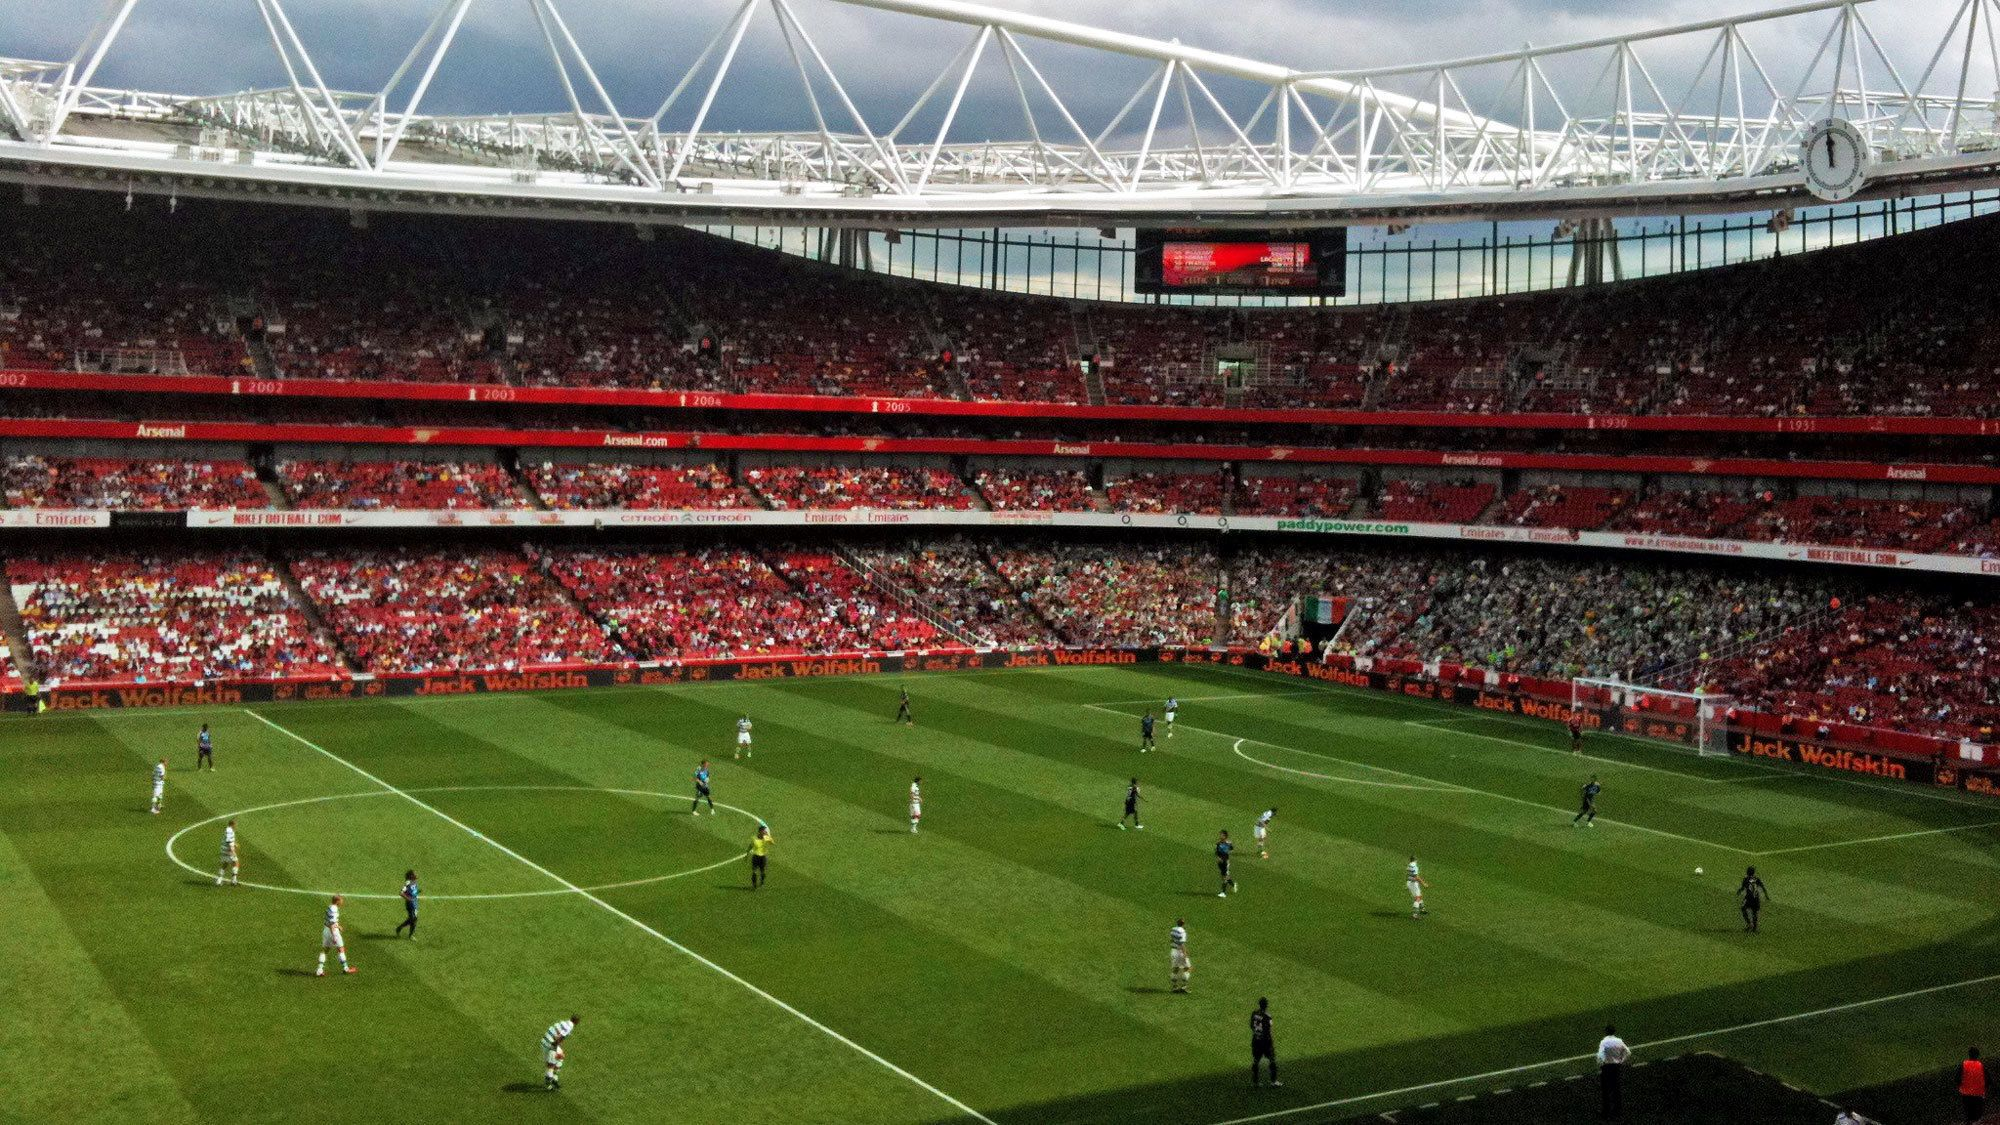 Soccer match in action at the Emirates Stadium in London